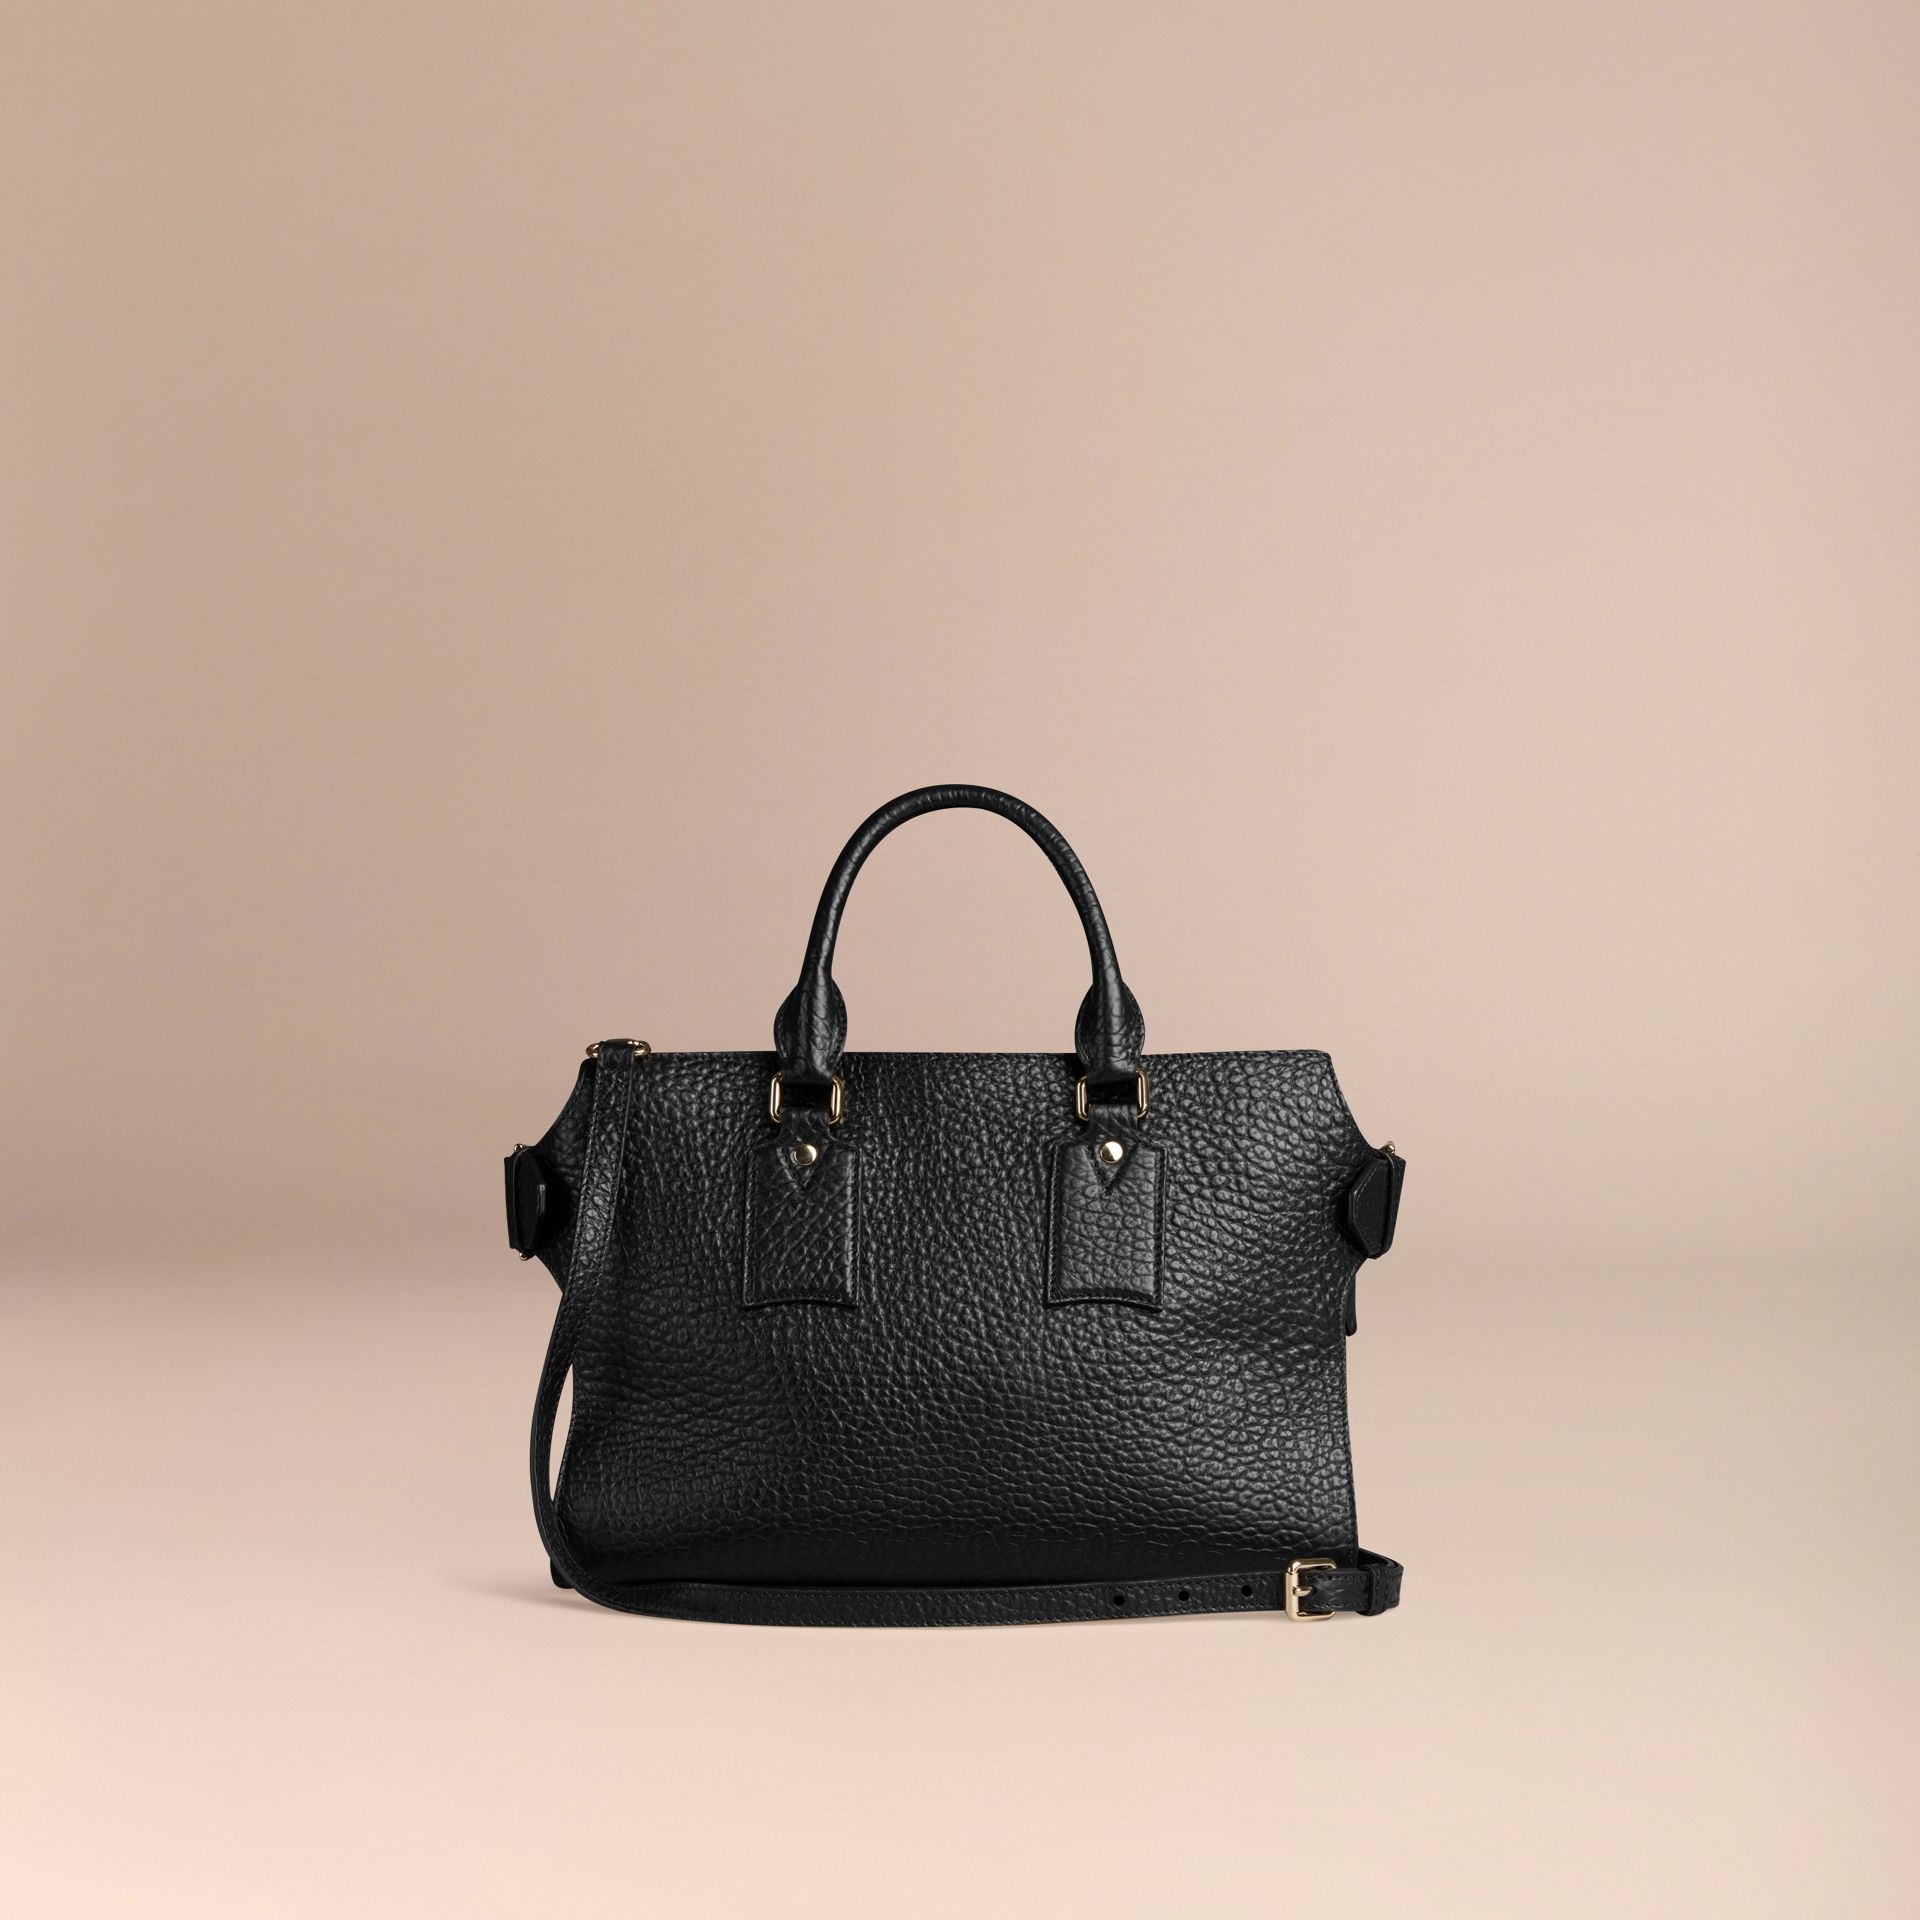 Noir Sac medium The Clifton en cuir grainé emblématique Noir - photo de la galerie 3